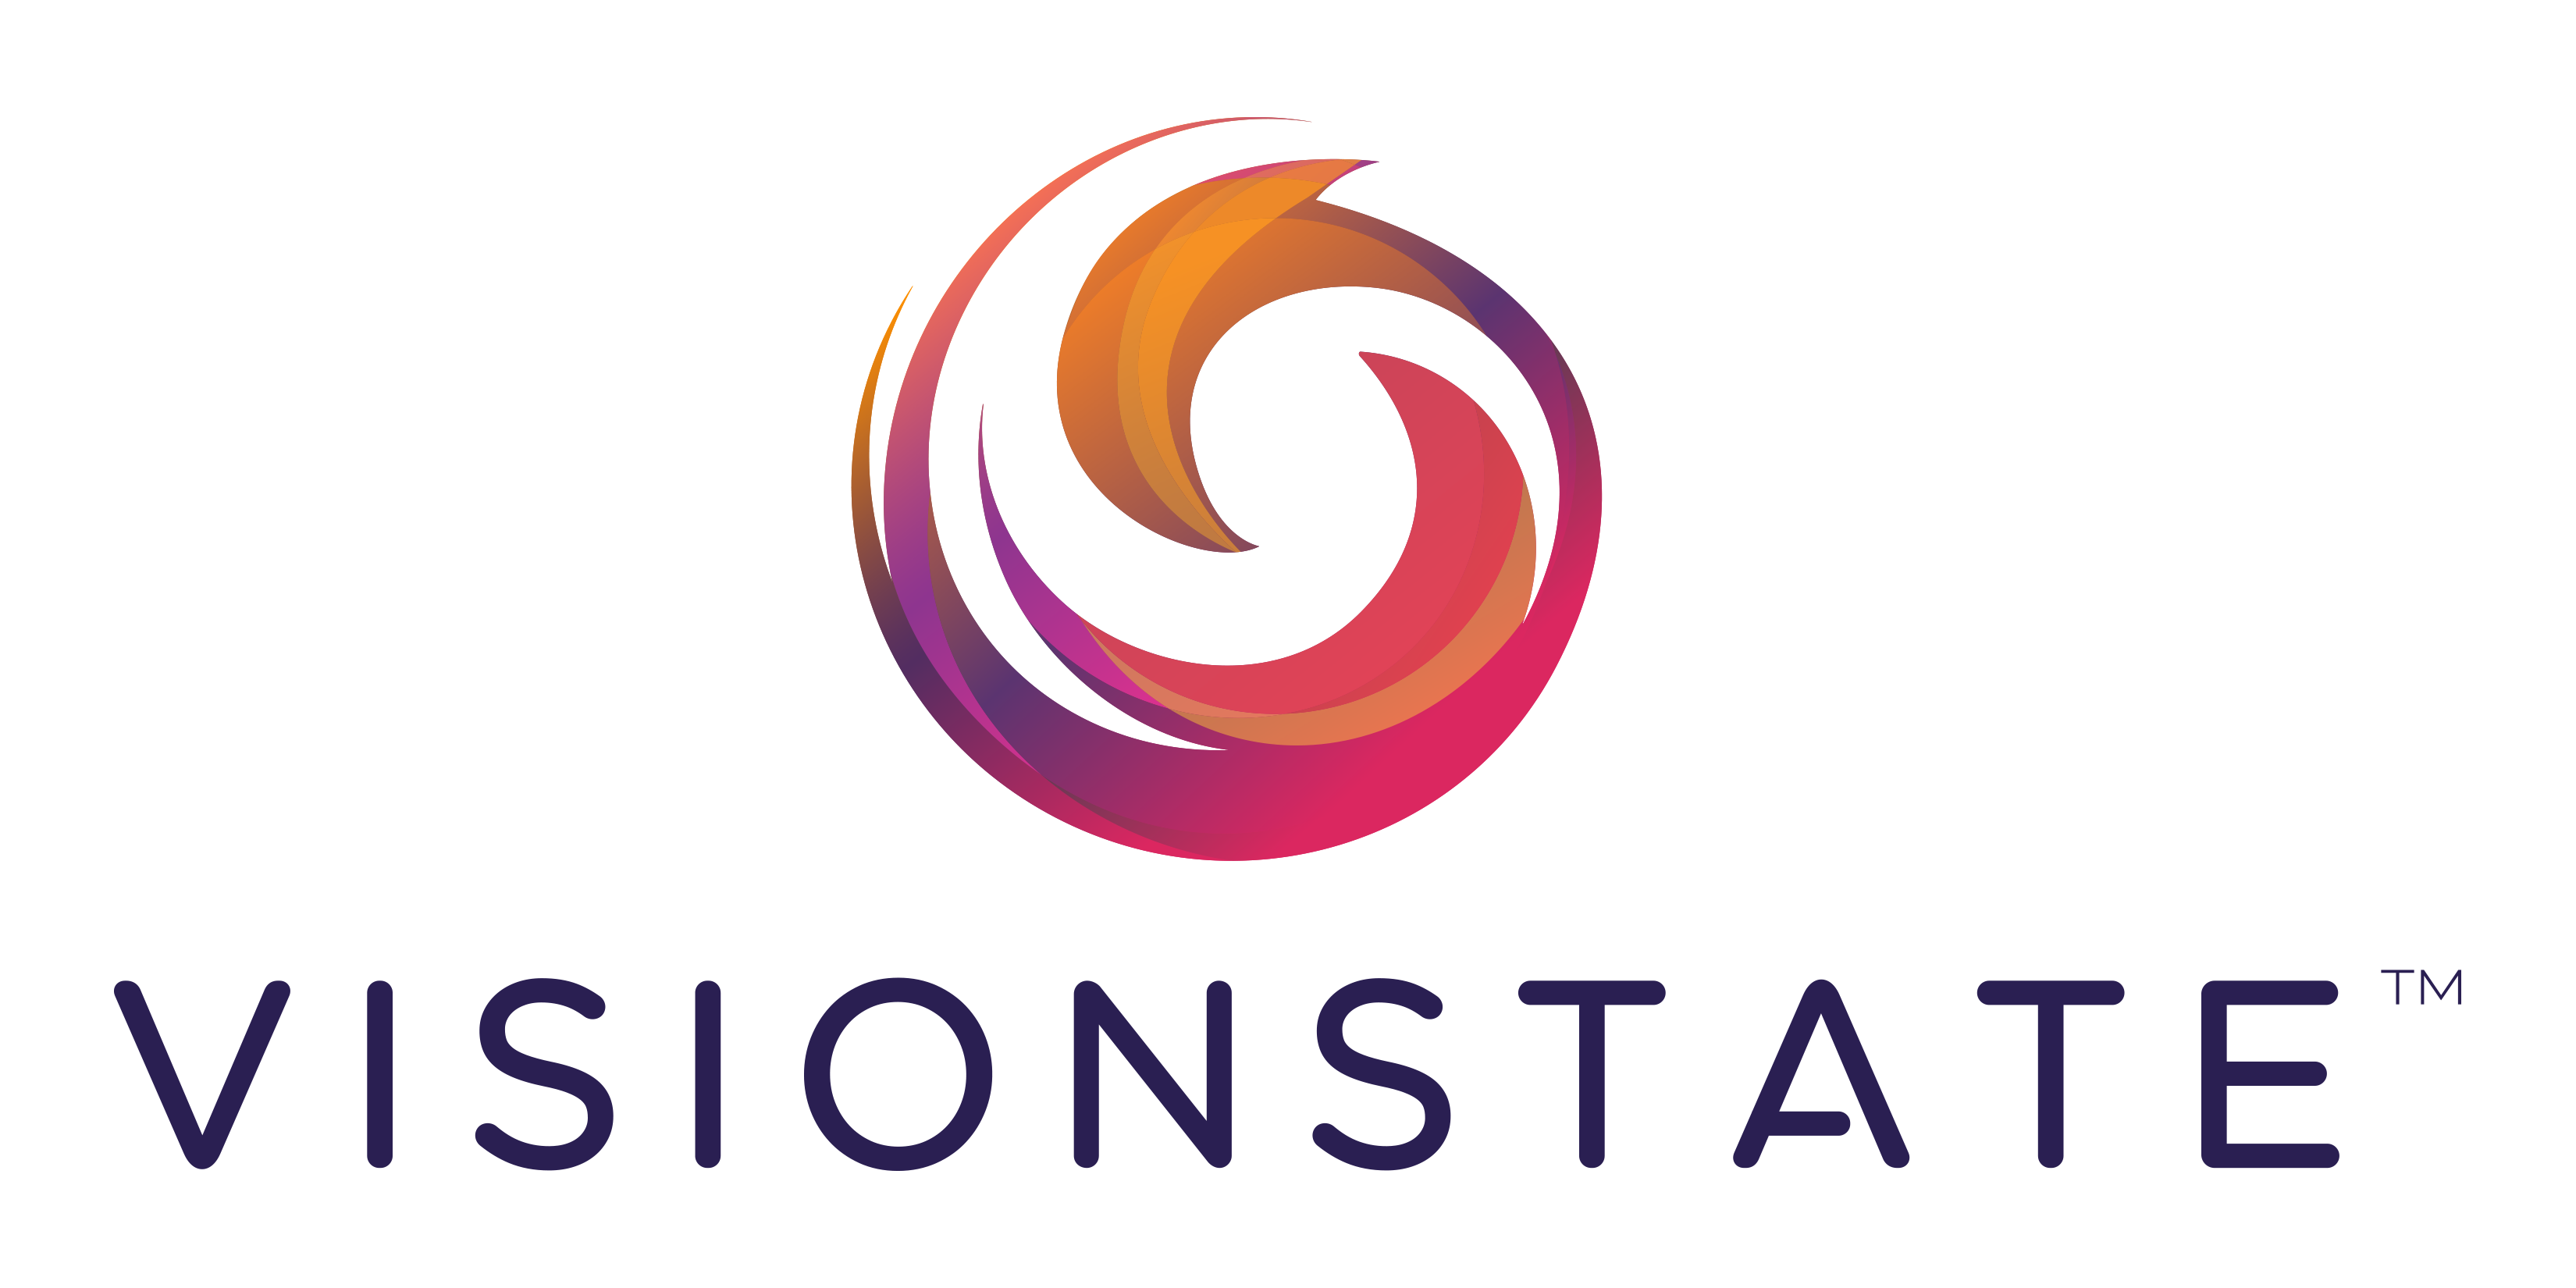 Visionstate Portfolio Company Taps University Grant for Its High-Tech Solar-Powered Greenhouse